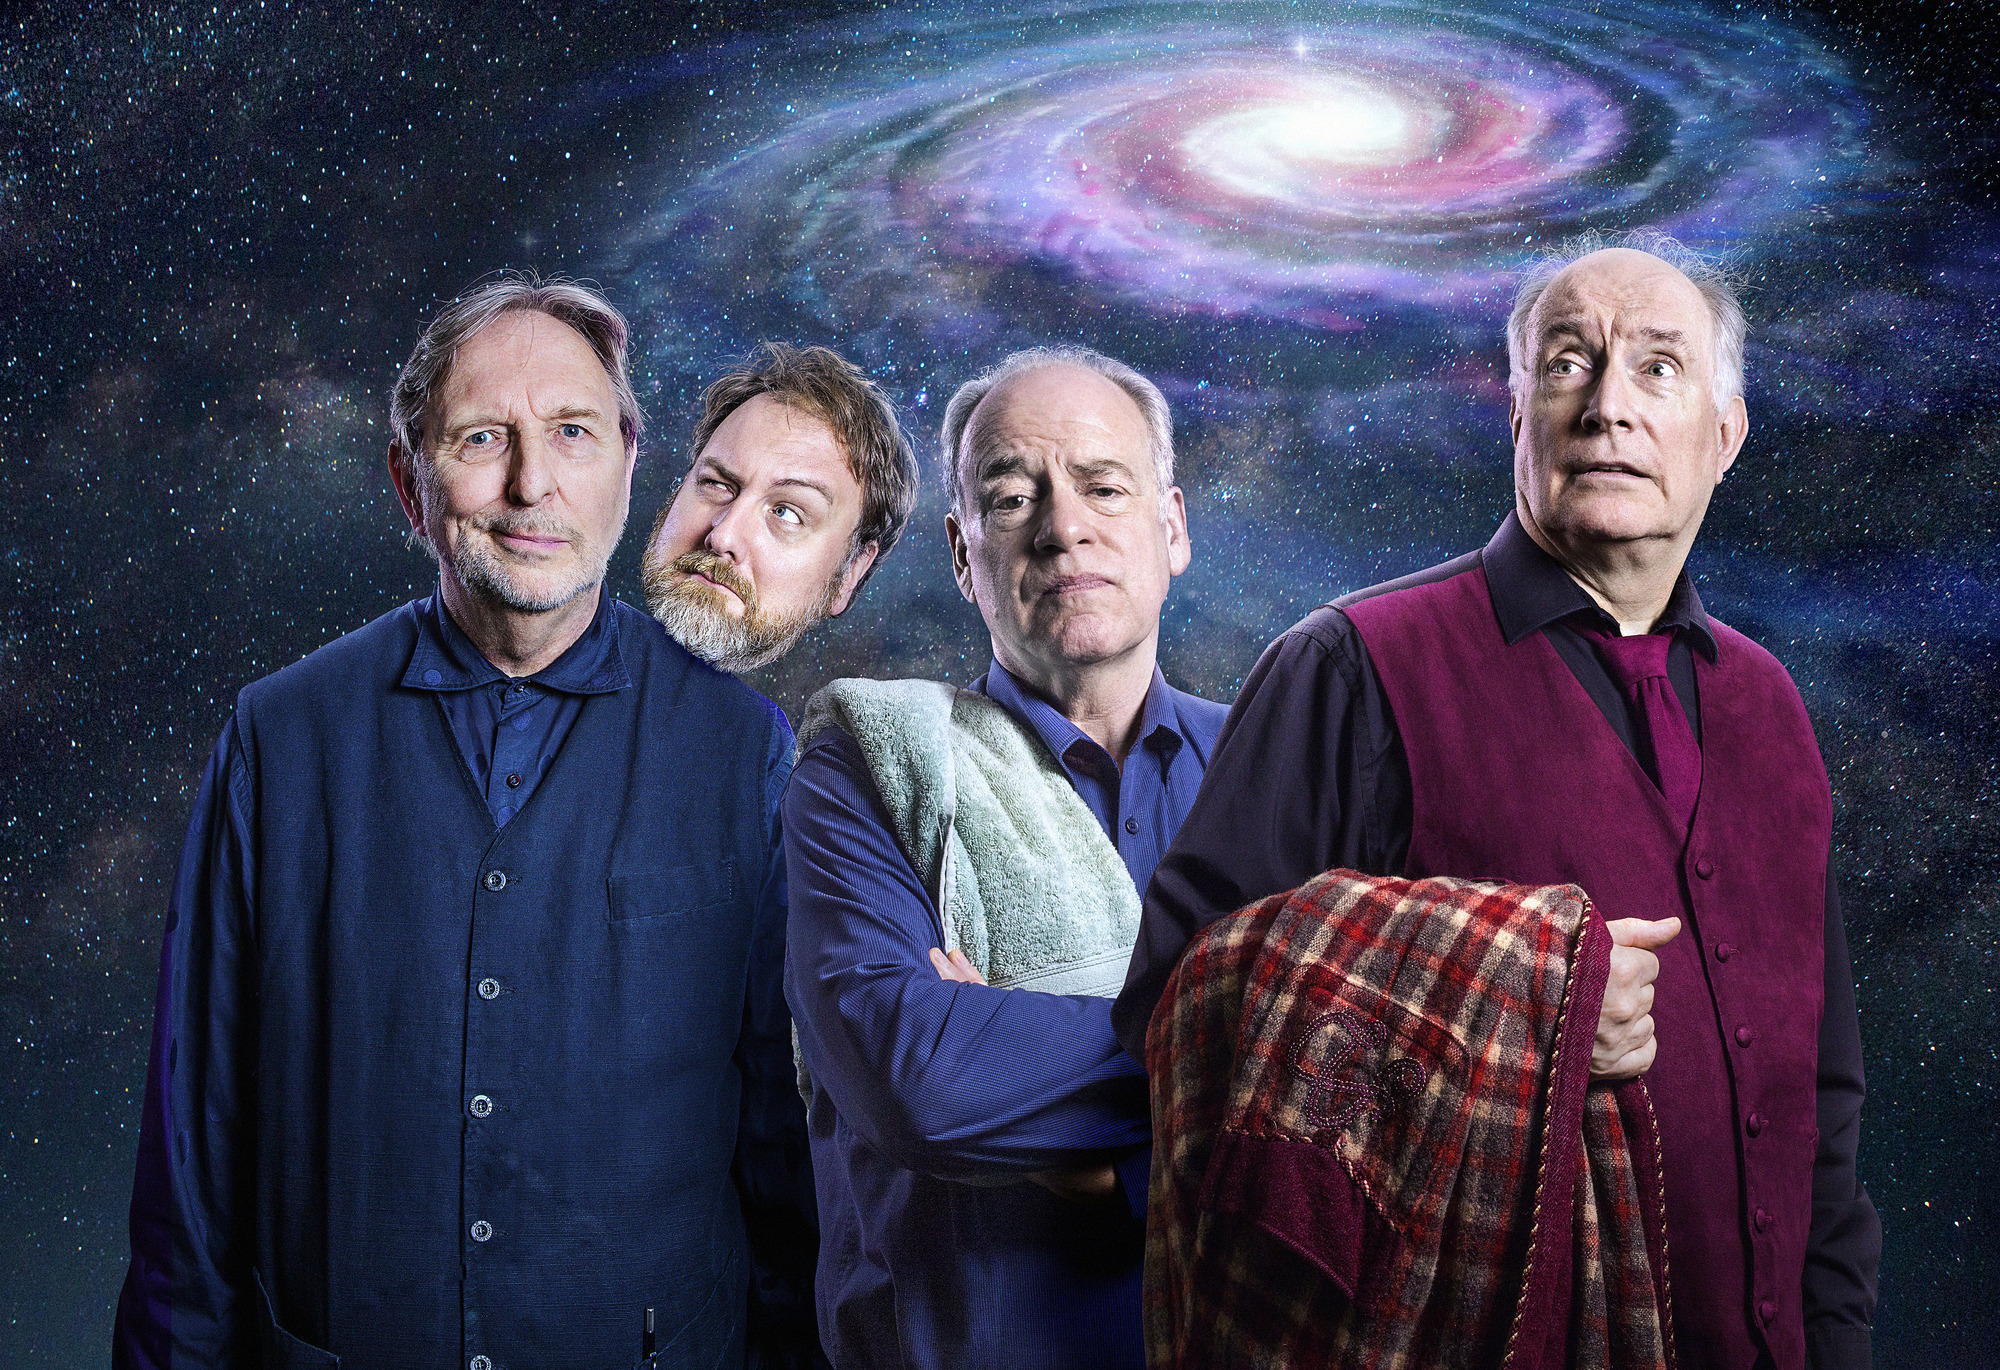 The Hitchhiker's Guide To The Galaxy: 10 things that were inspired by Douglas Adams' masterpiece